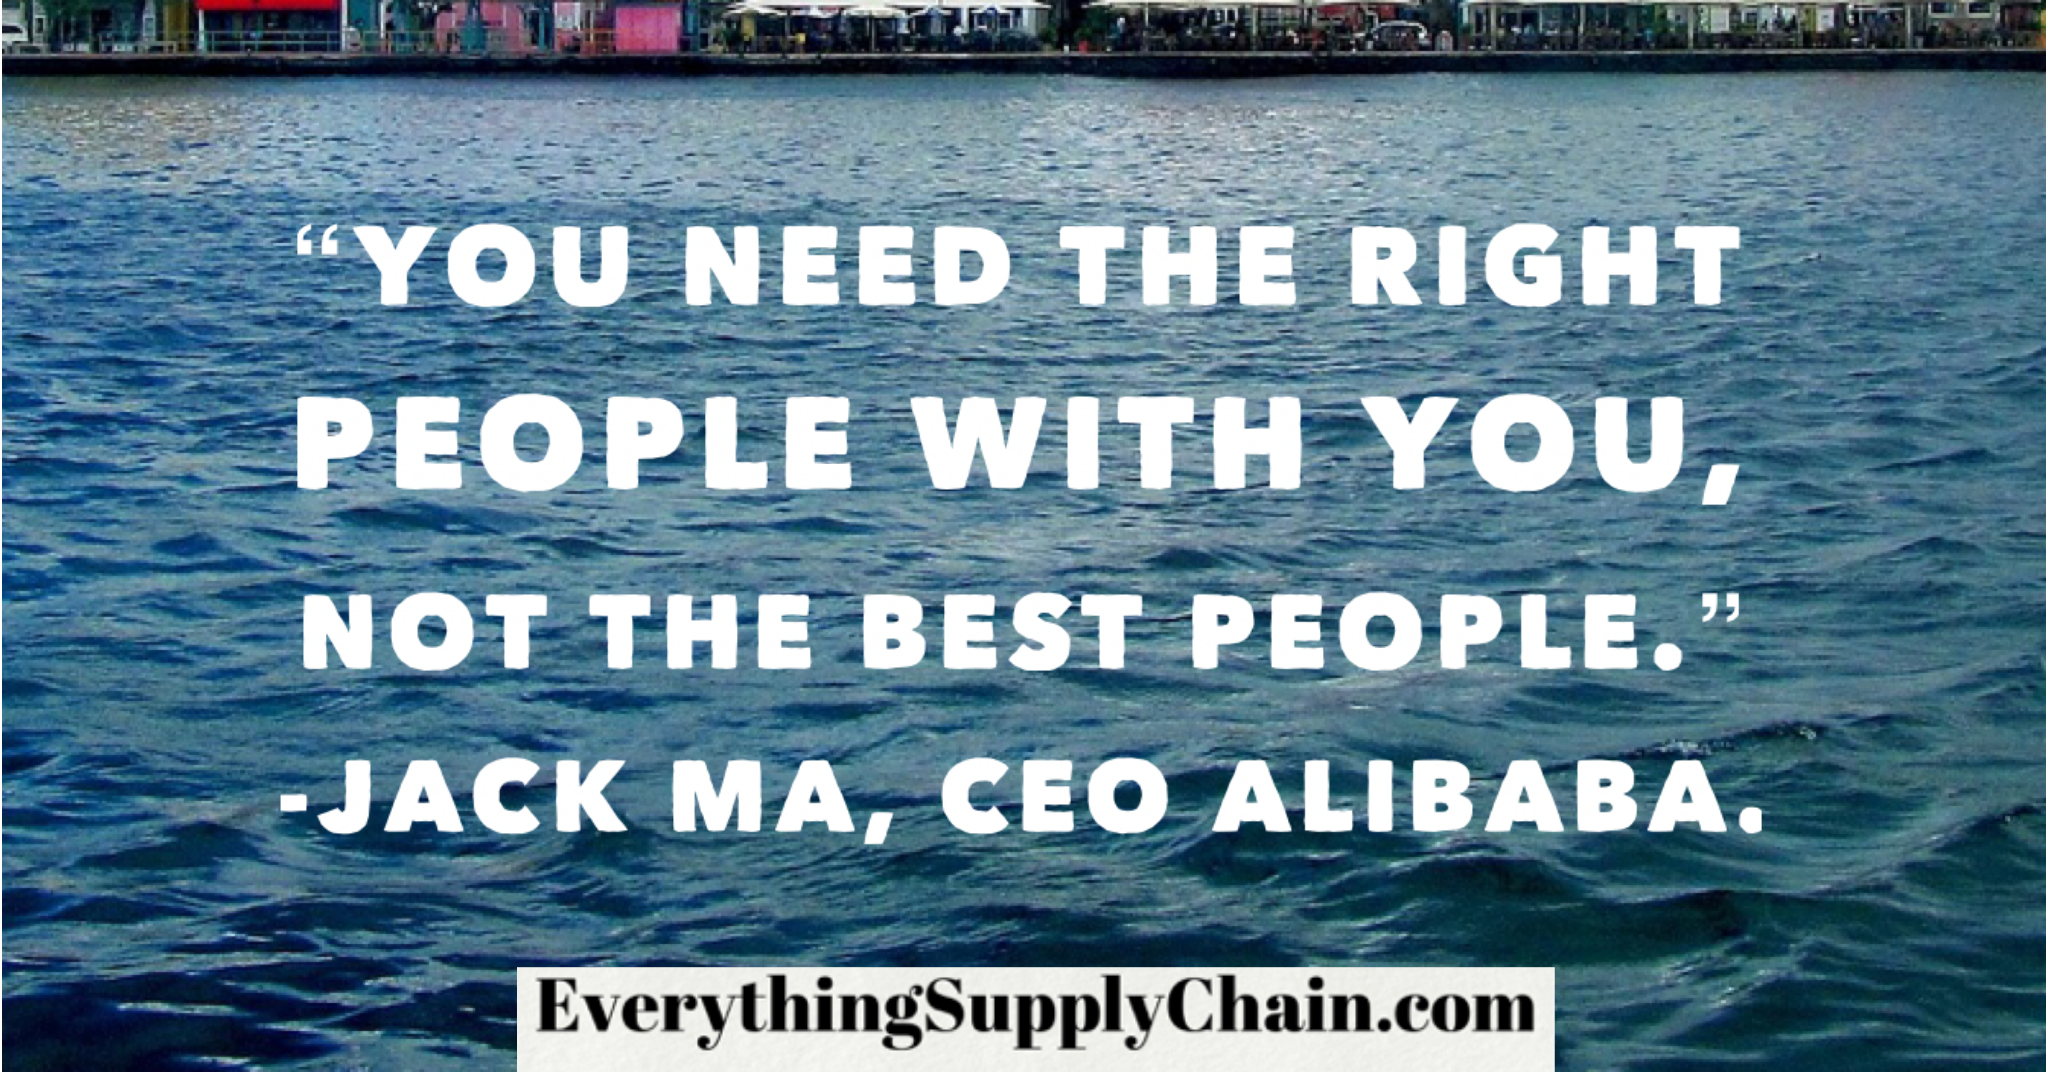 Alibaba Supply Chain Warehouse